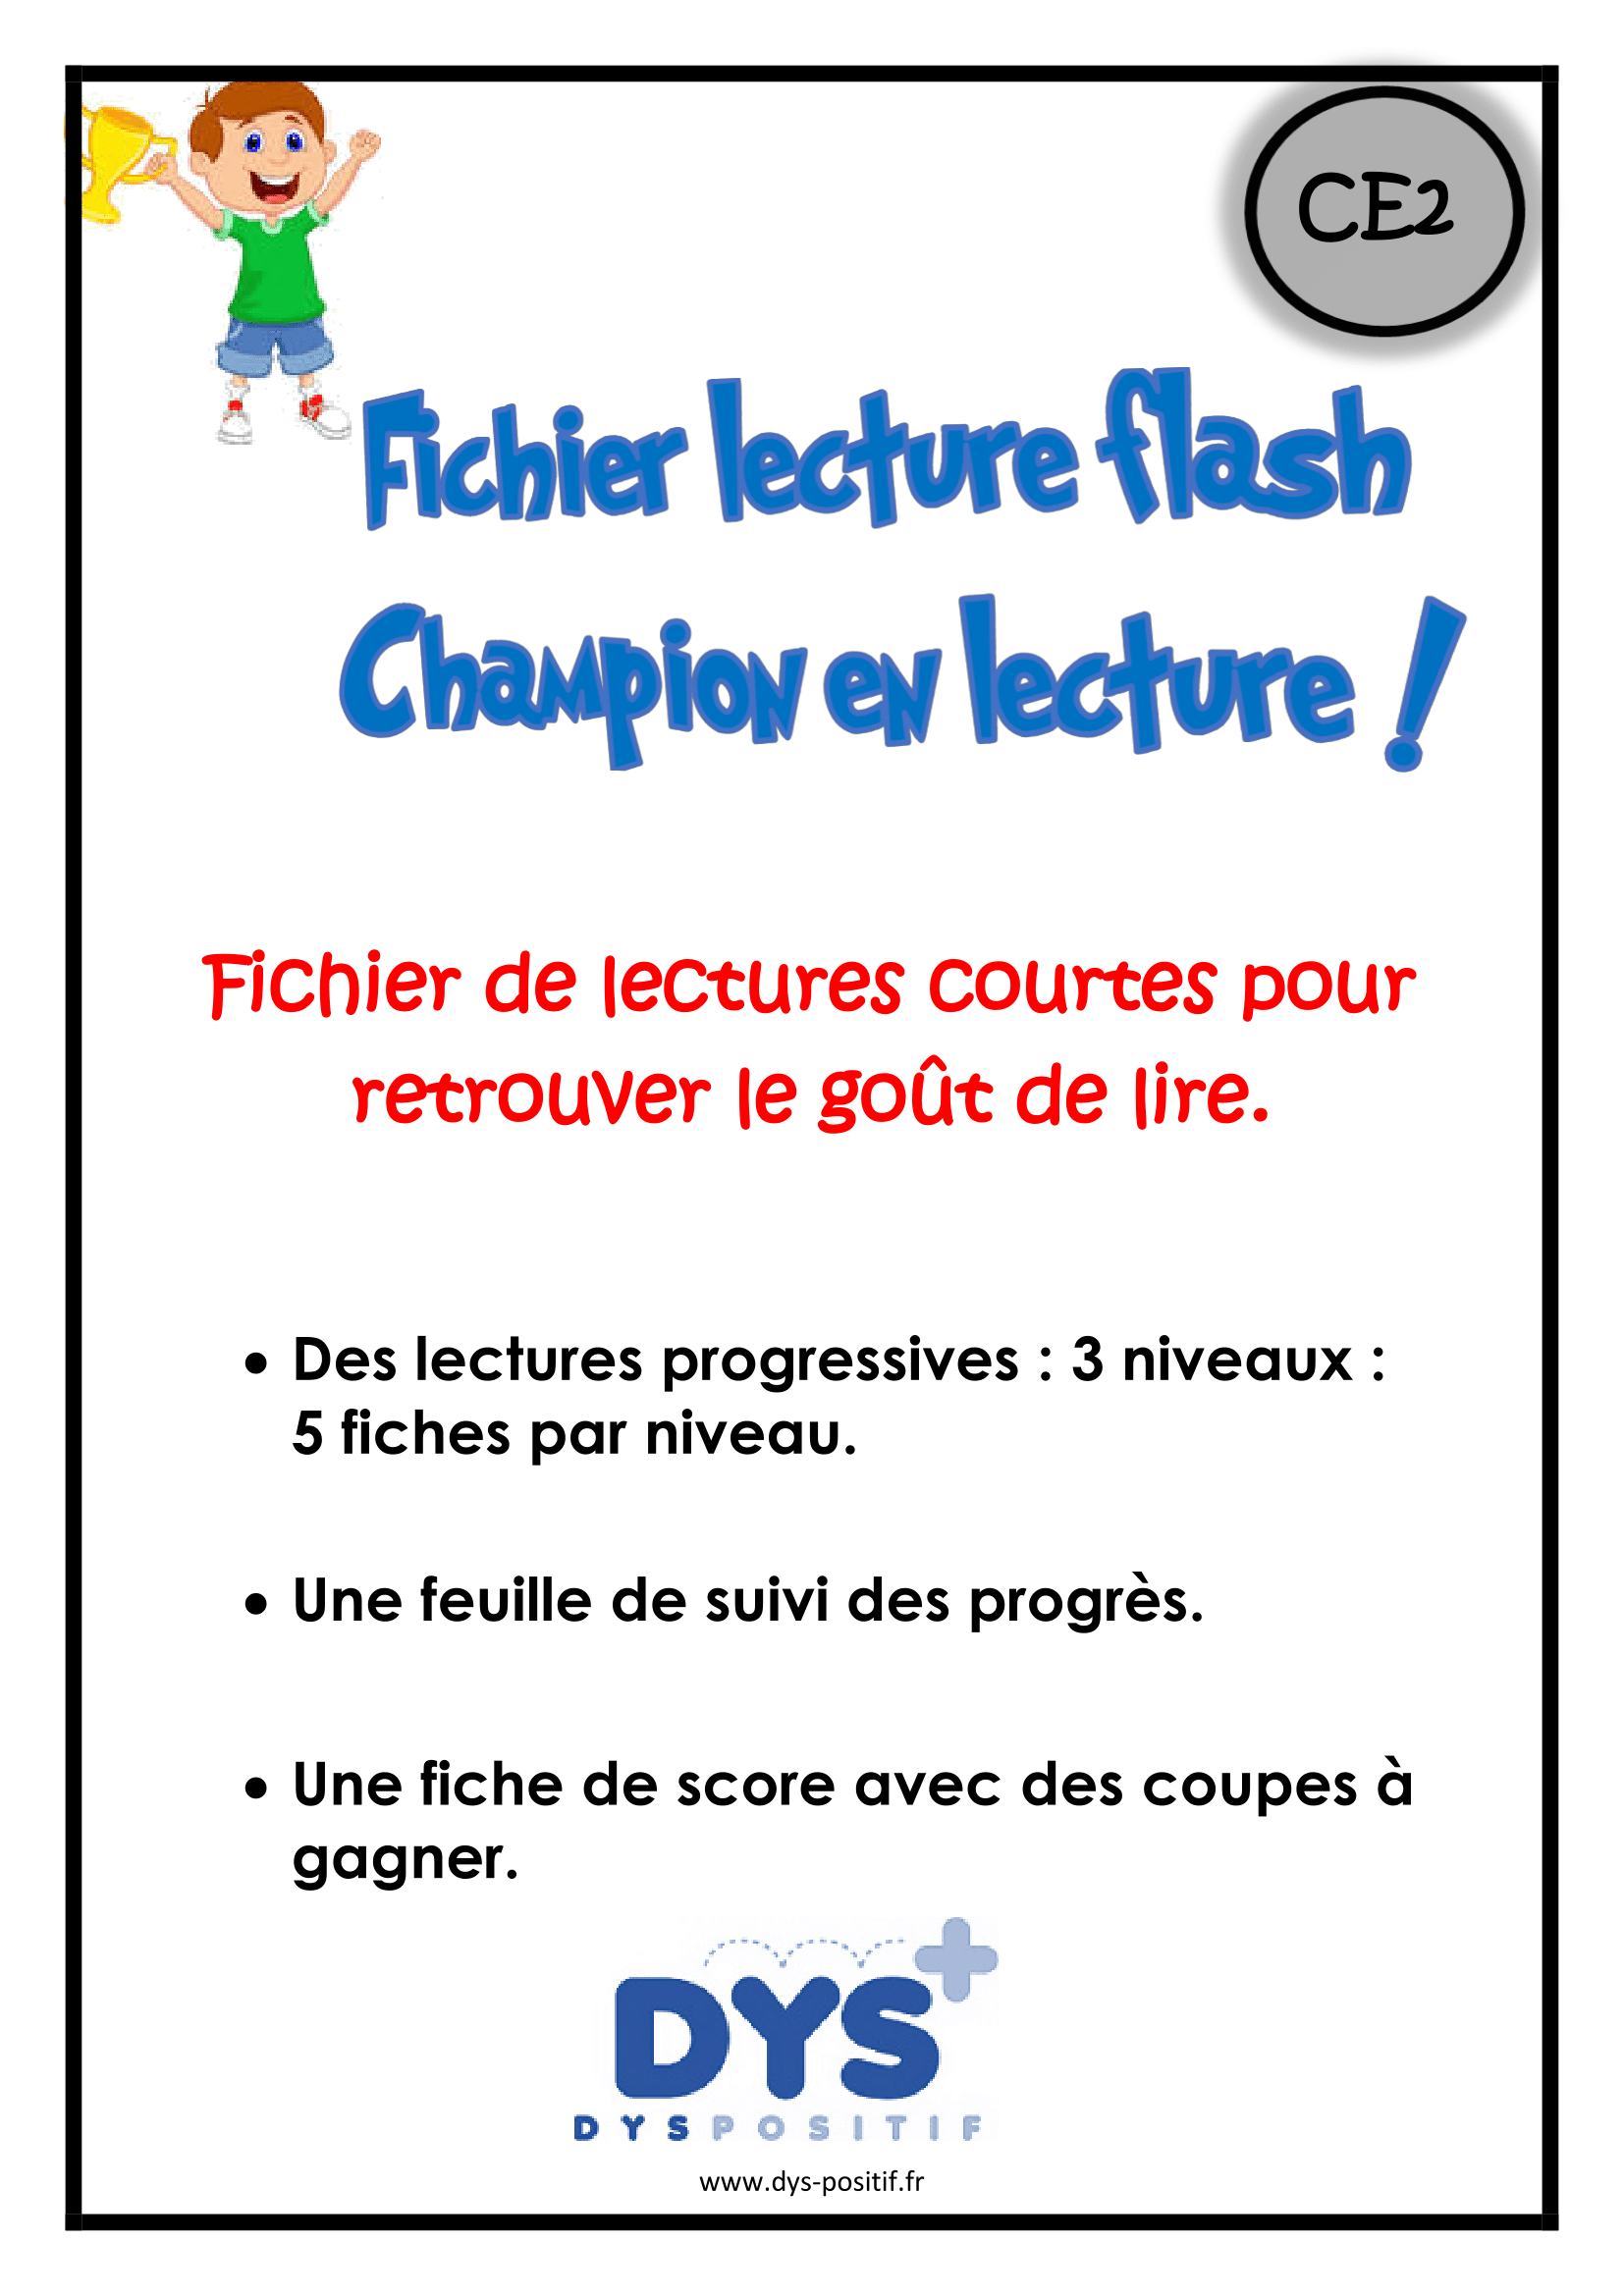 Lecture flash CE2